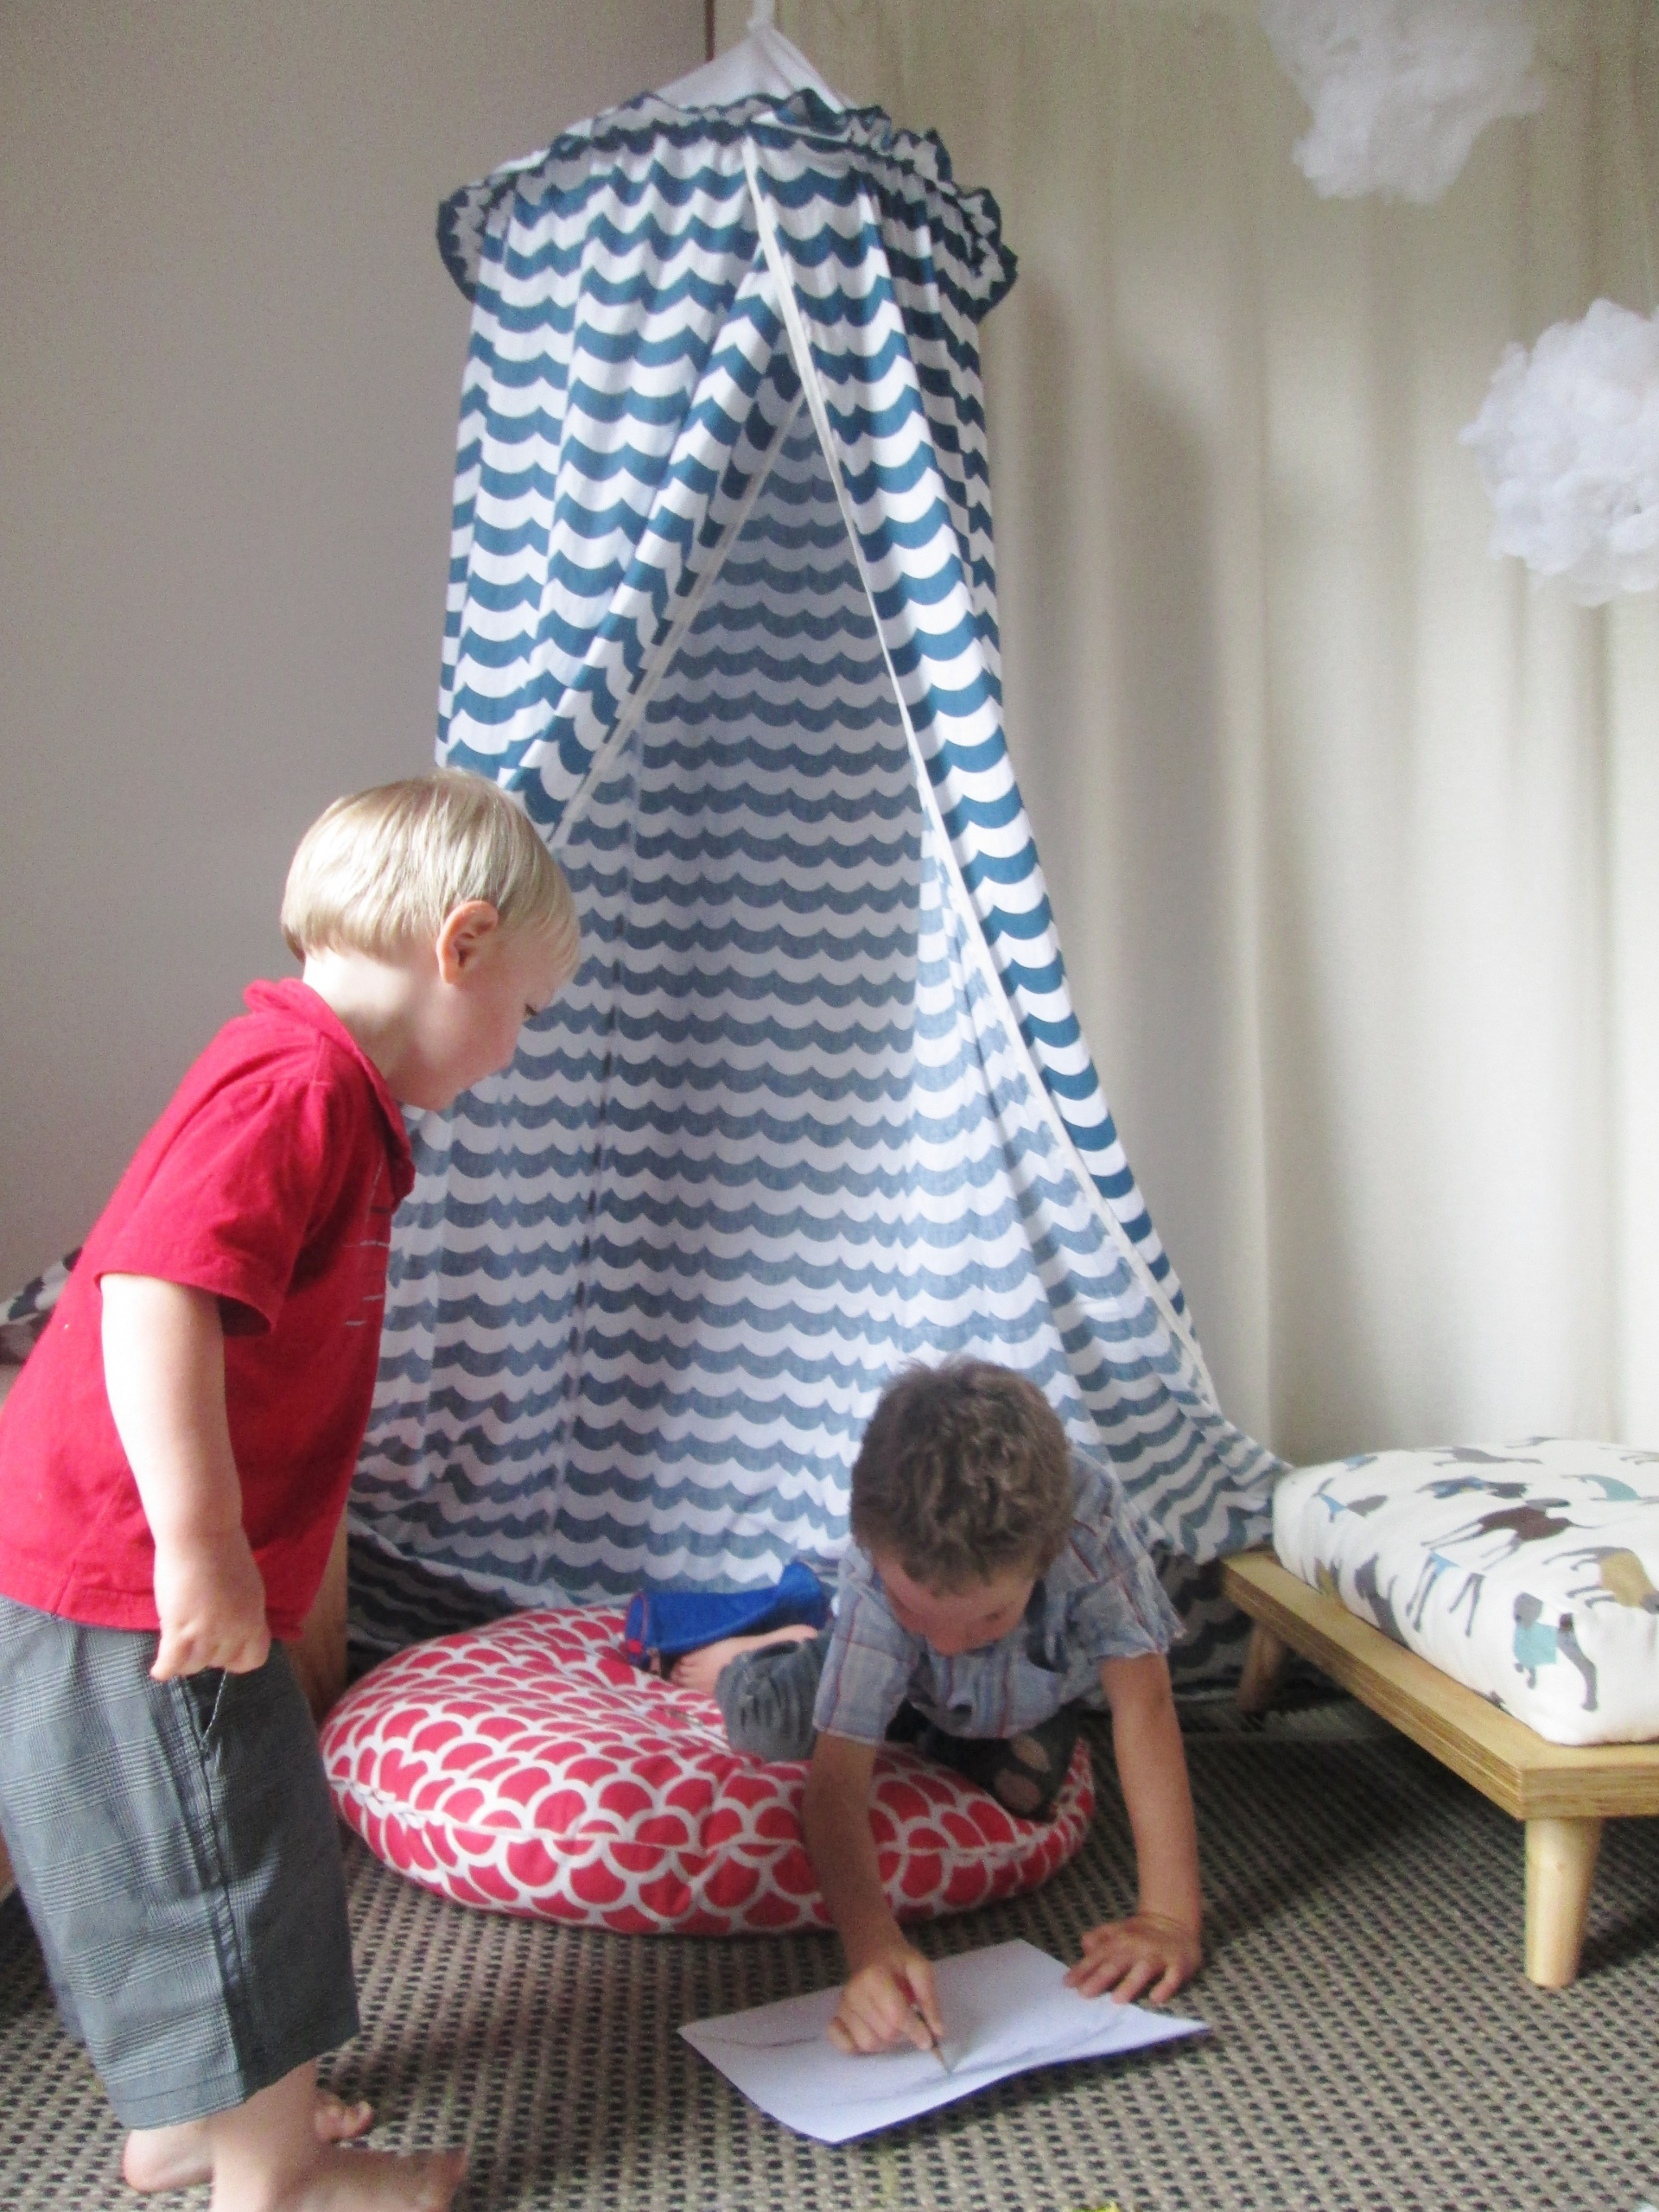 & Kids hanging play tent / bed canopy